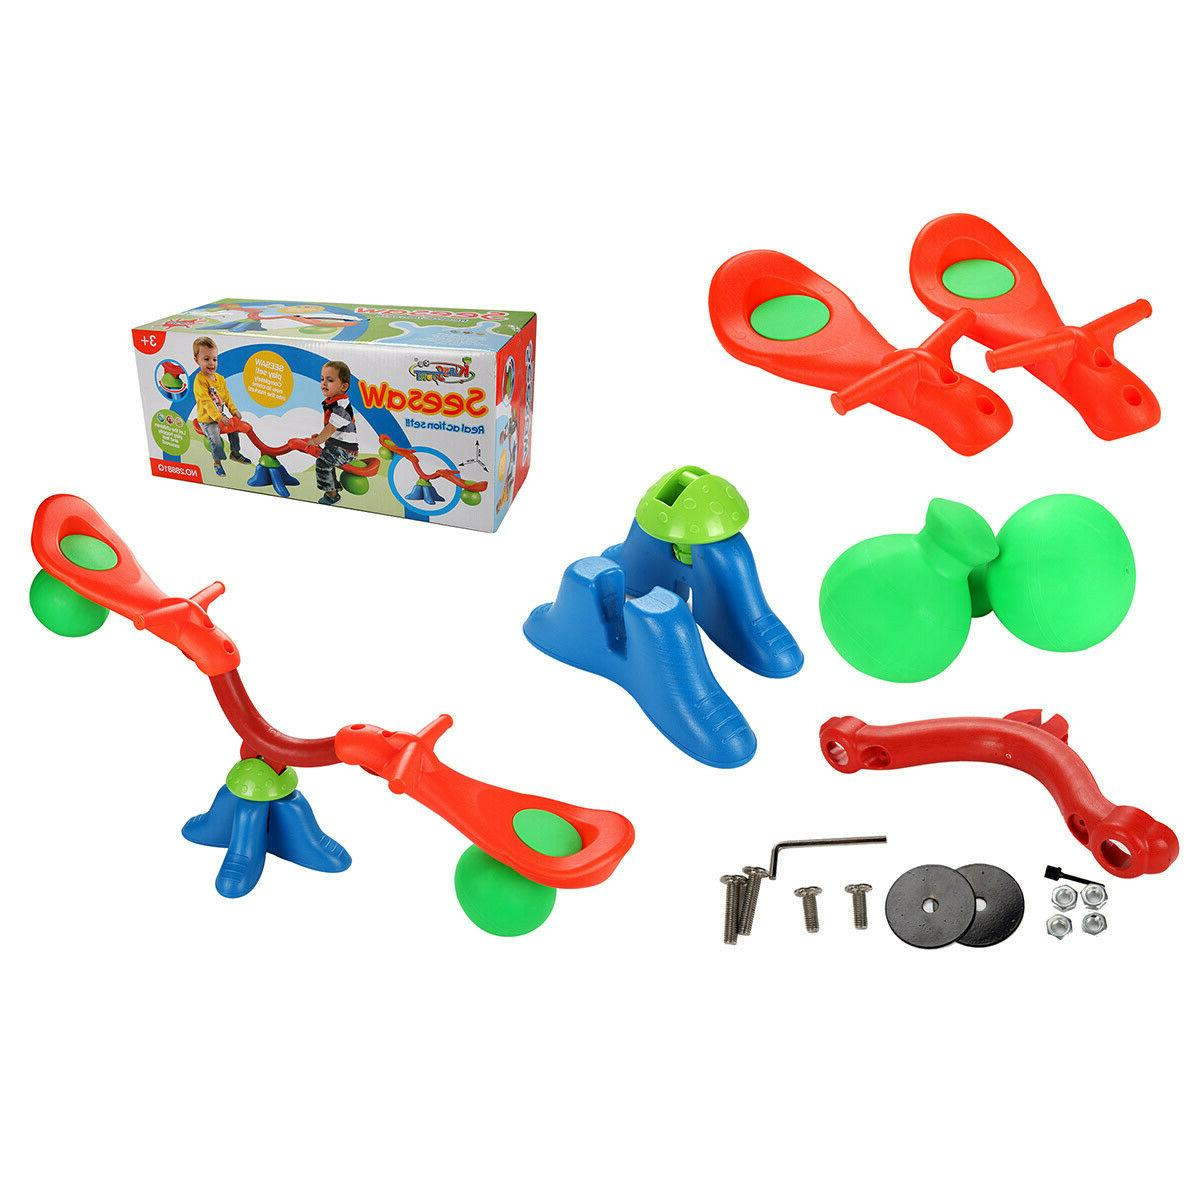 Kids Totter Playground Play 360